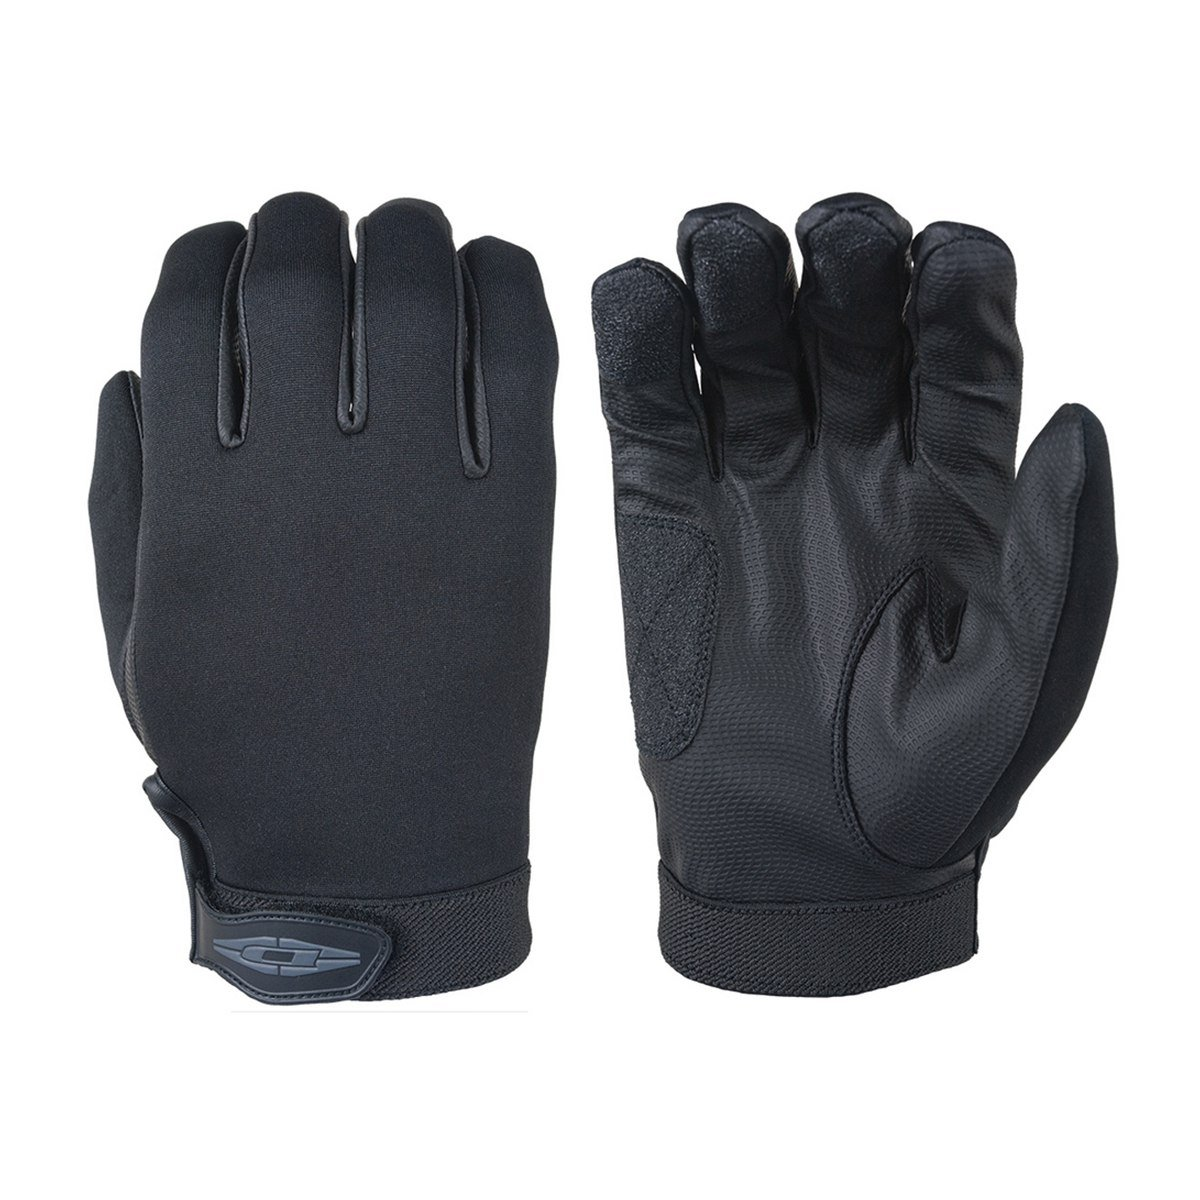 Damascus DNS860L Stealth X Neoprene Gloves with Thinsulate and Waterproof Liners, Medium